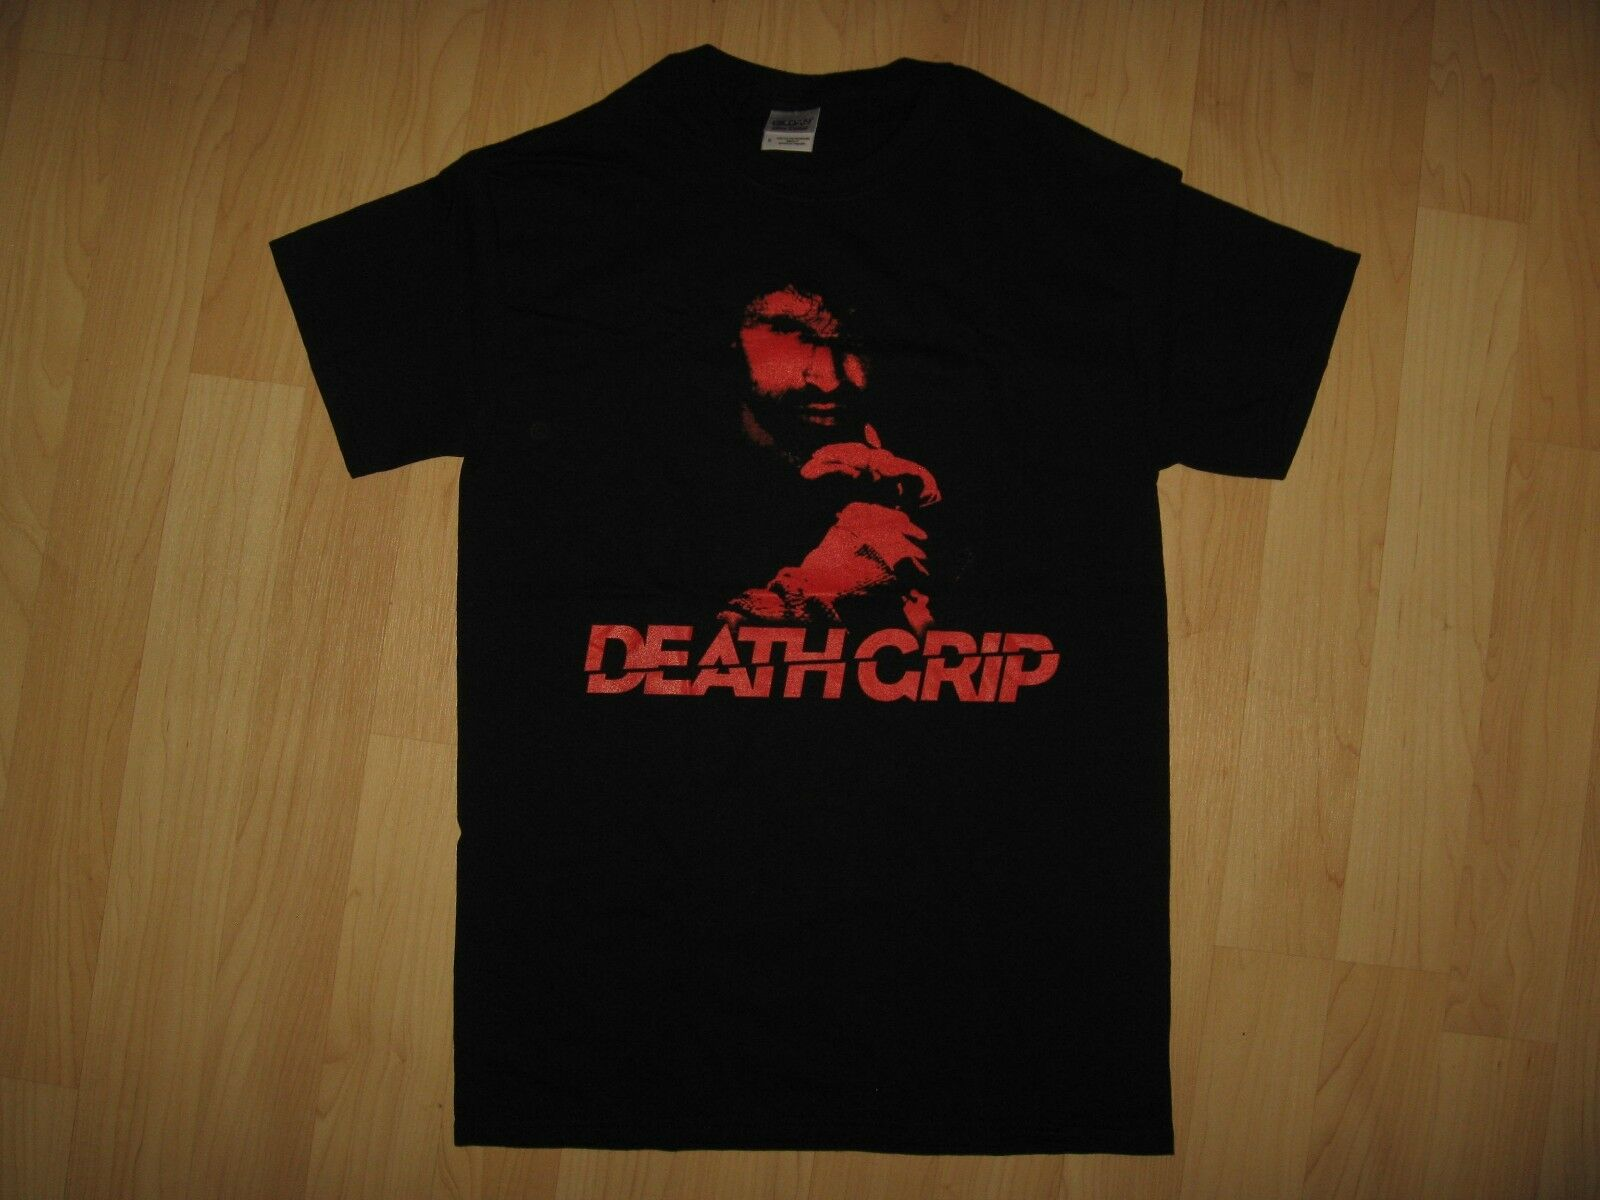 Death Grip Movie Tee - 2012 Martial Arts Film Eric Jacobus Black T Shirt Small 100% Cotton Short Sleeve Summer T-Shirt image